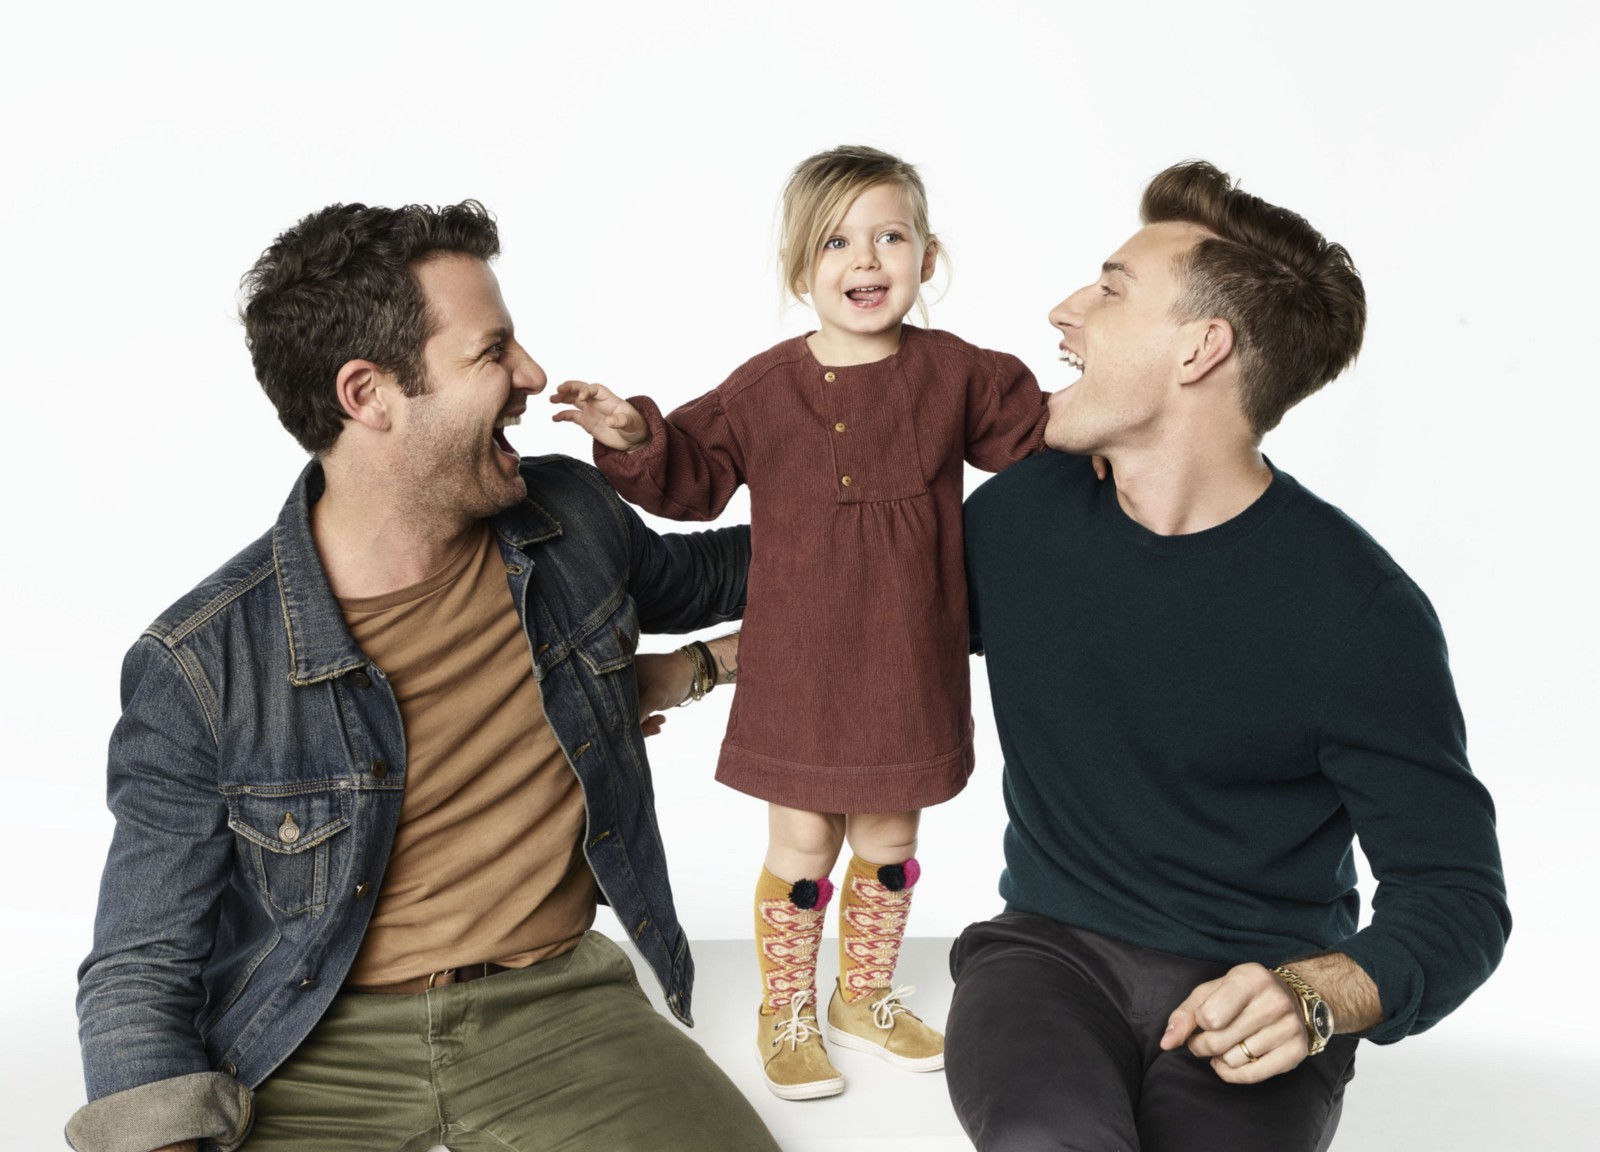 Family Equality Council to Honor Nate Berkus & Jeremiah Brent at Los Angeles Impact Awards Gala